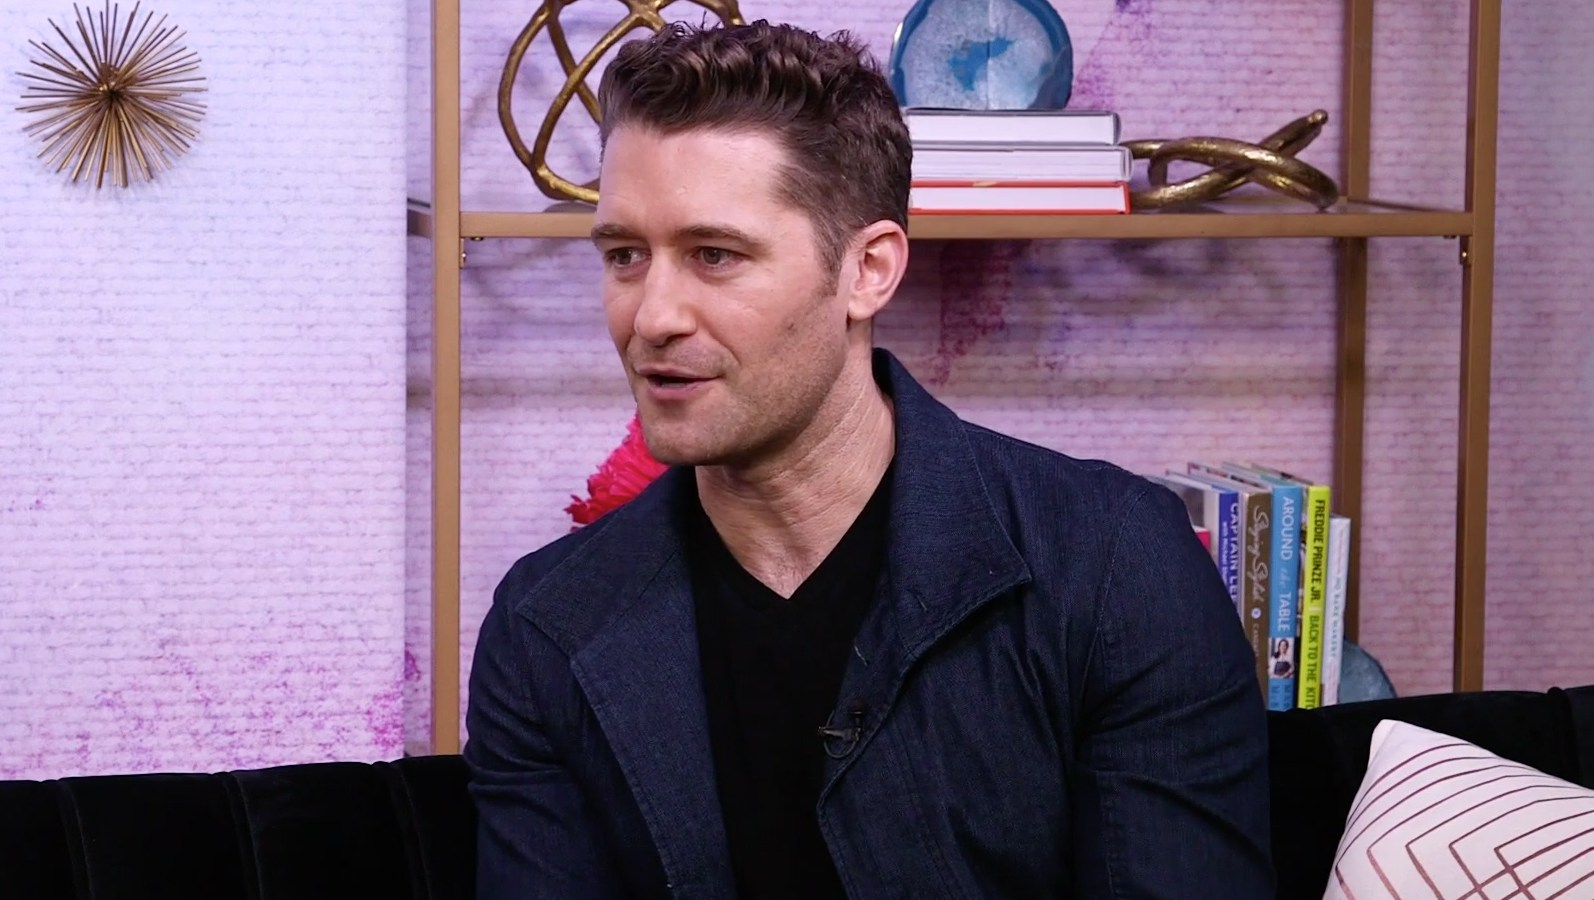 Matthew Morrison Son Following In His Footsteps